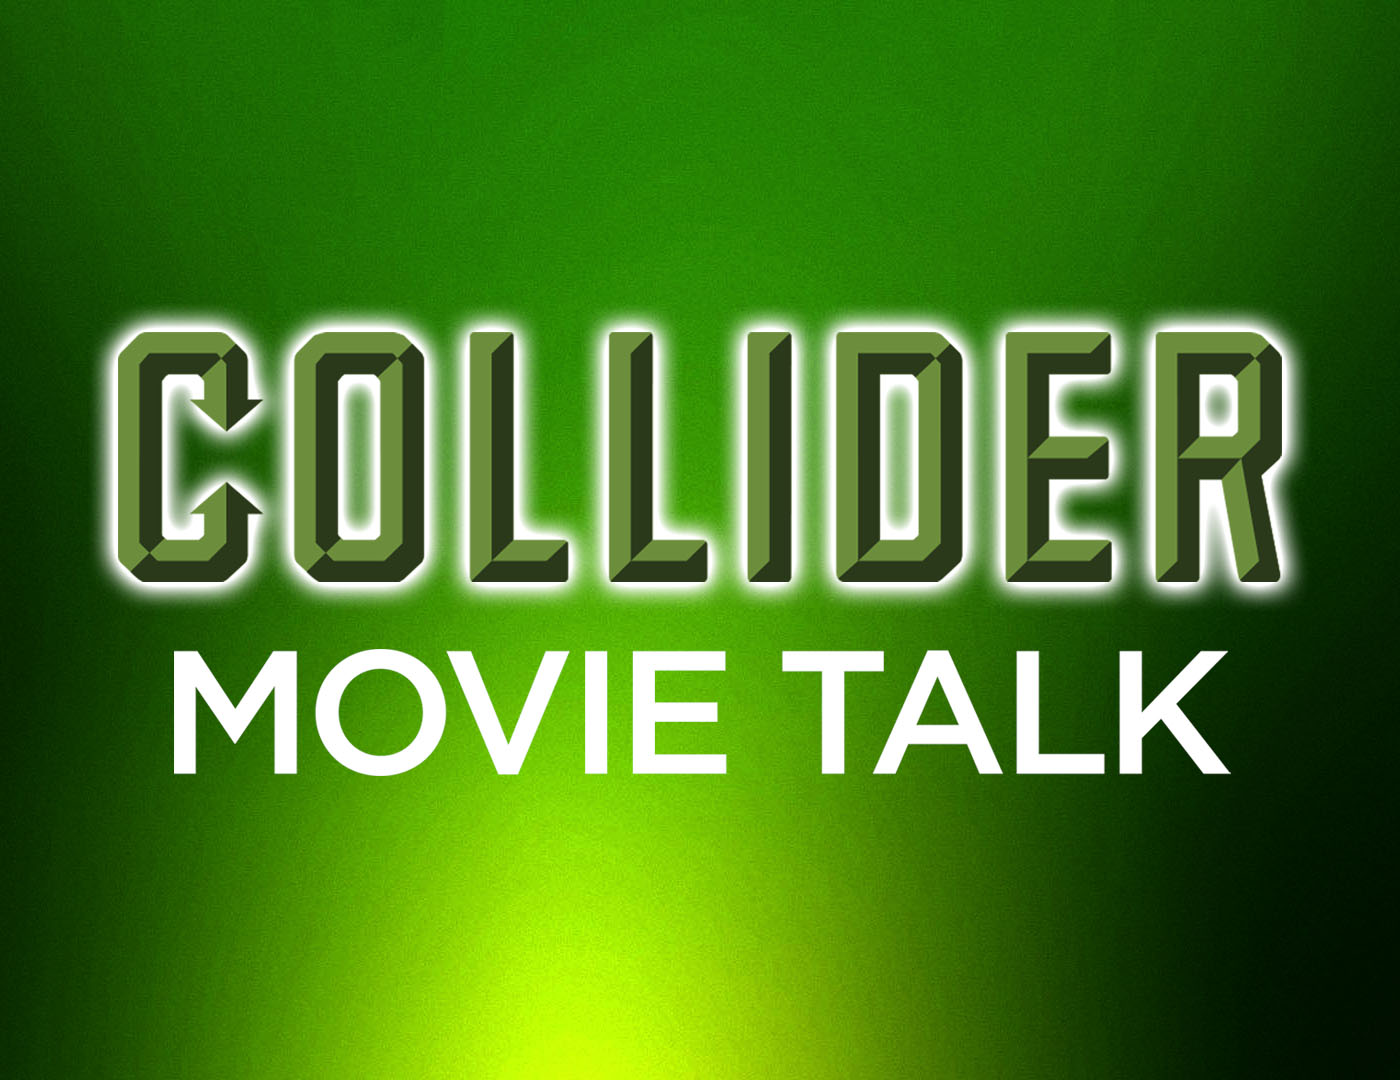 Collider Movie Talk - Young Han Solo Cast! Alden Ehrenreich Lands Role